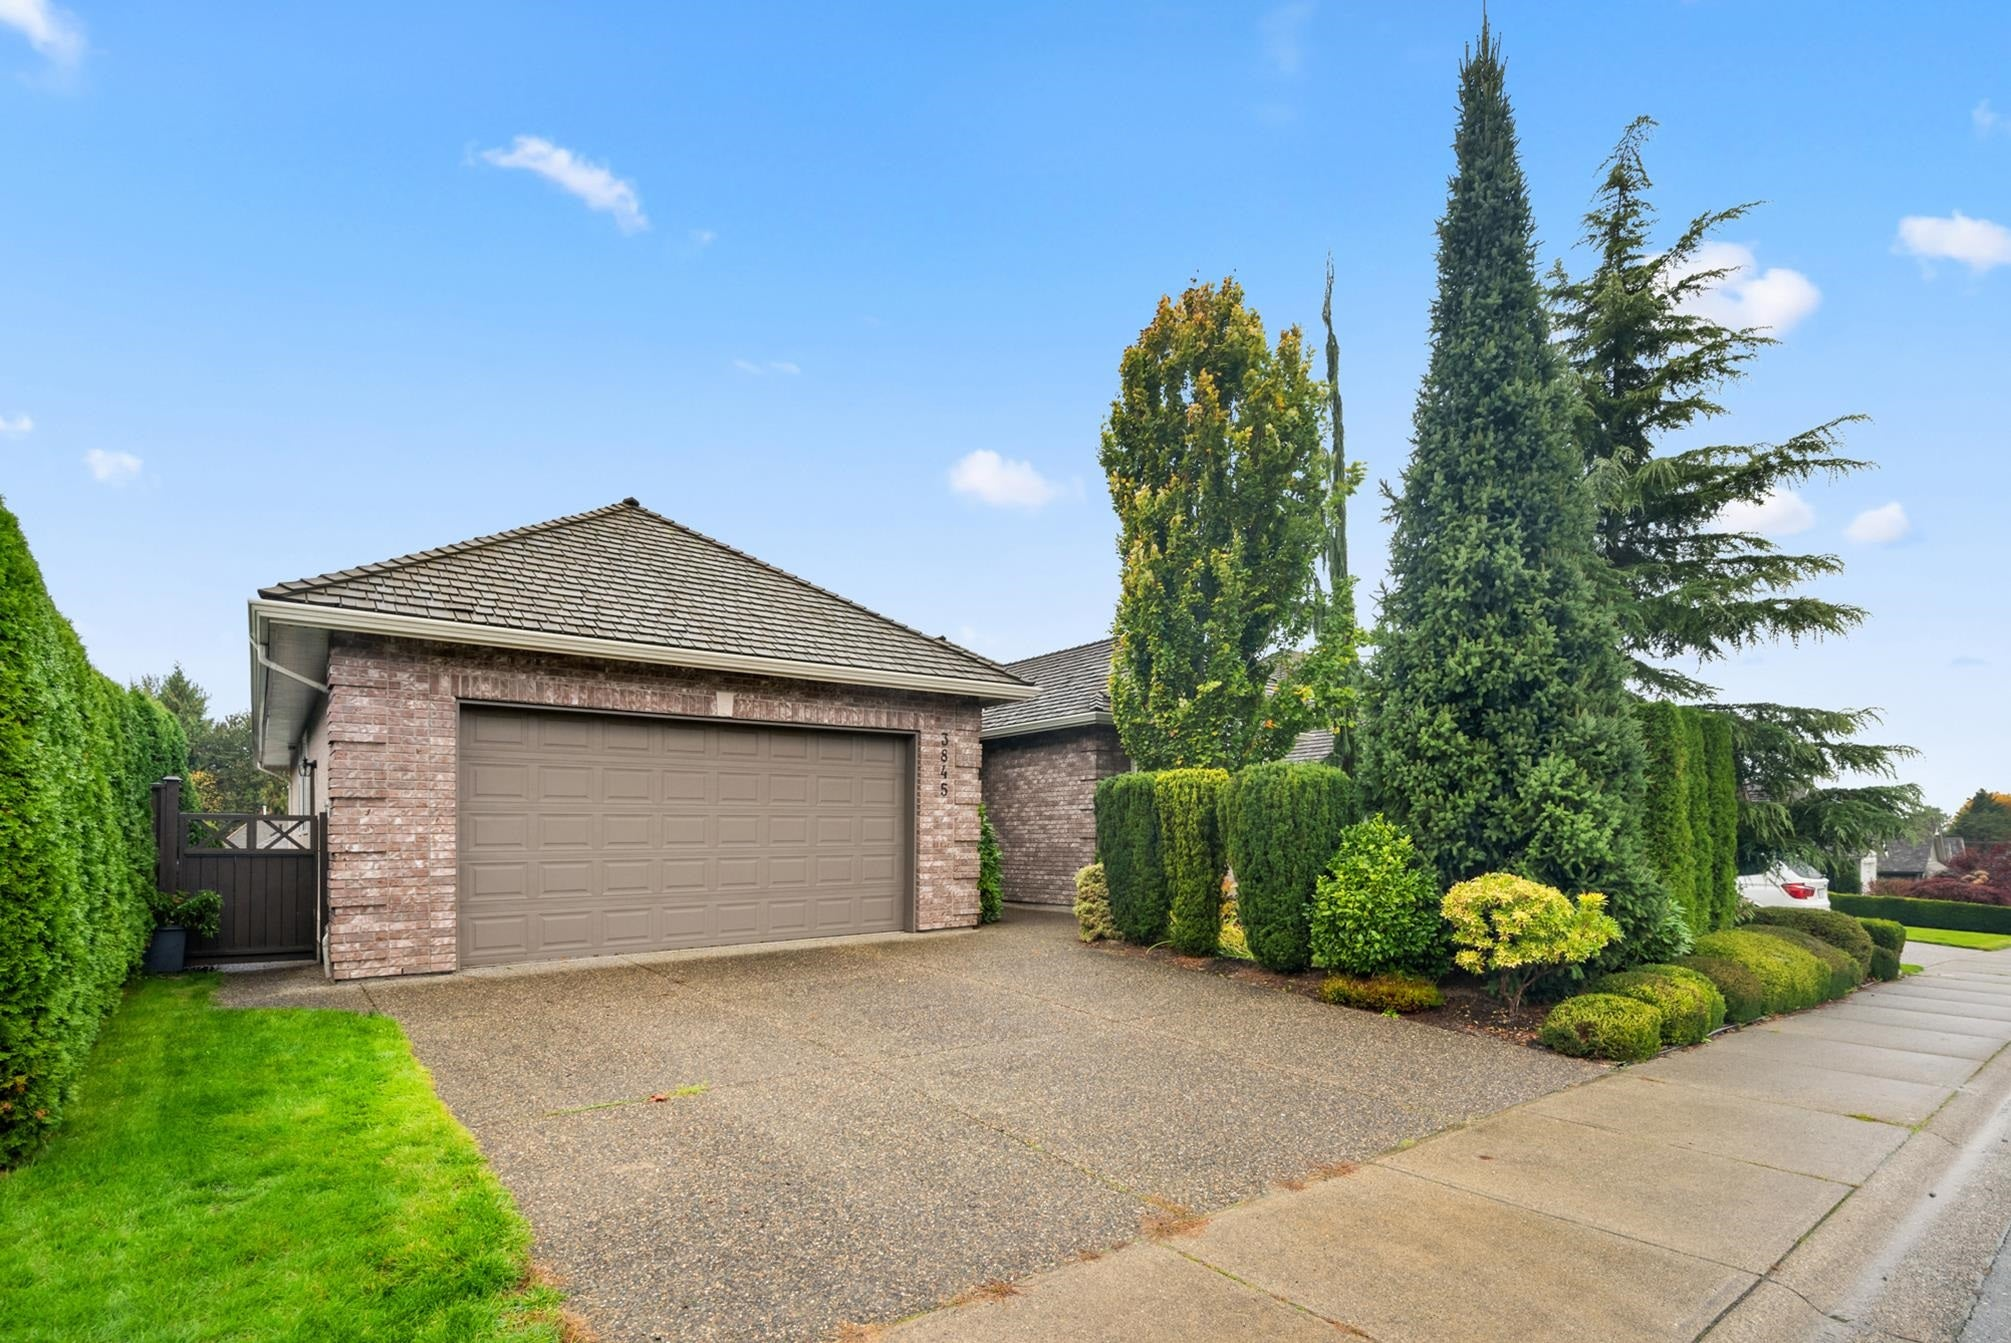 3845 LATIMER STREET - Abbotsford East House/Single Family for sale, 4 Bedrooms (R2627091) - #1